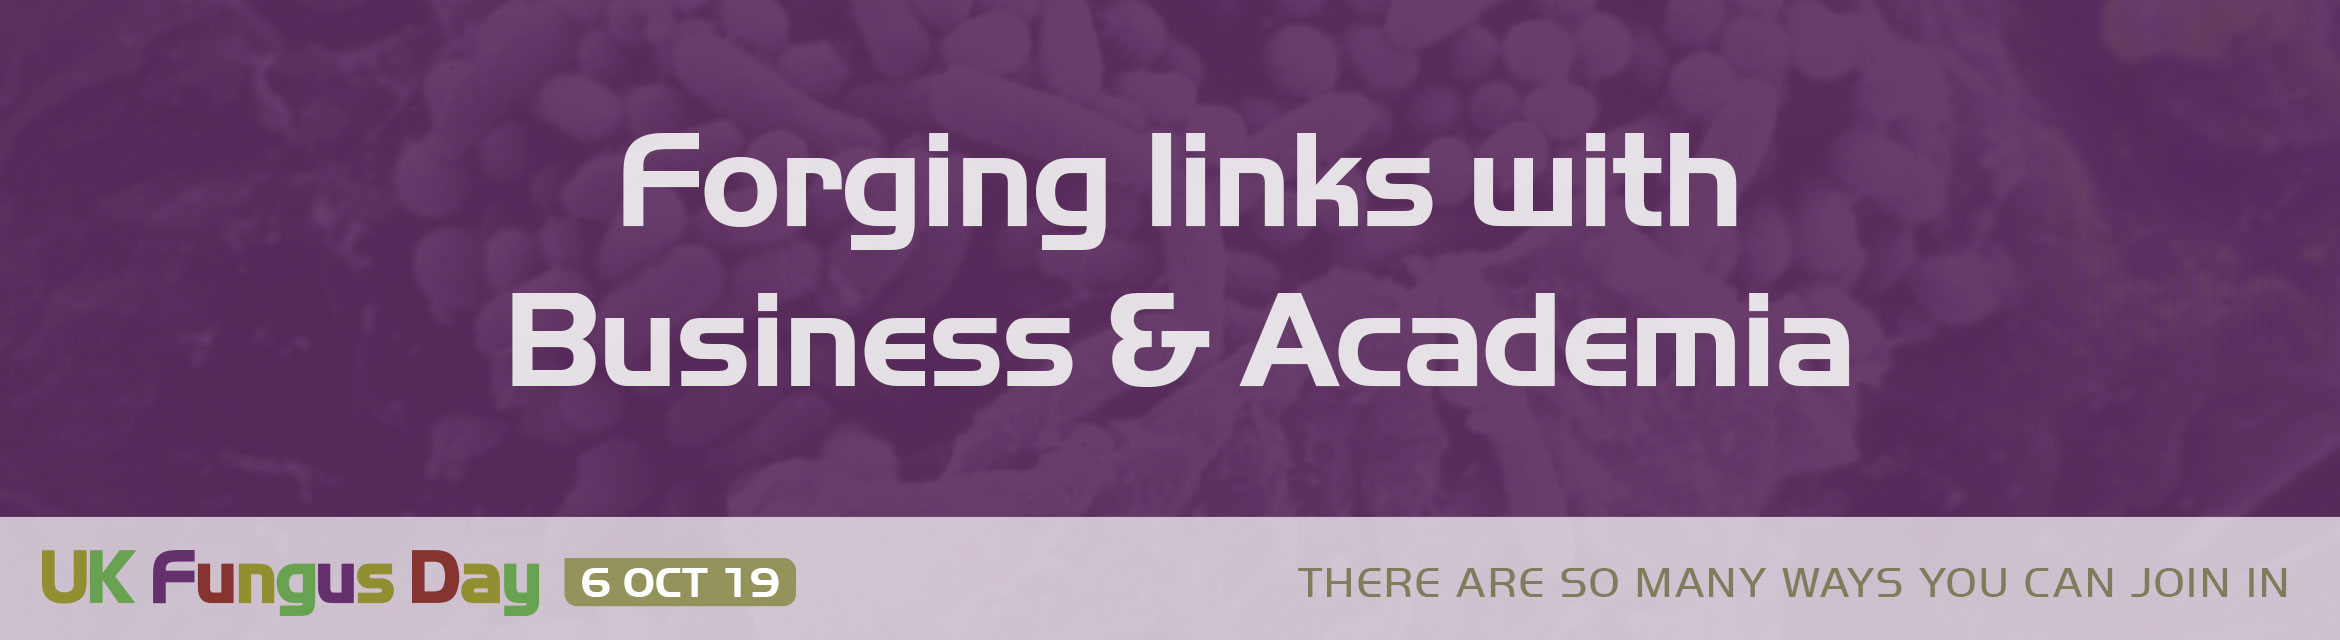 Forging links with Industry & Academia